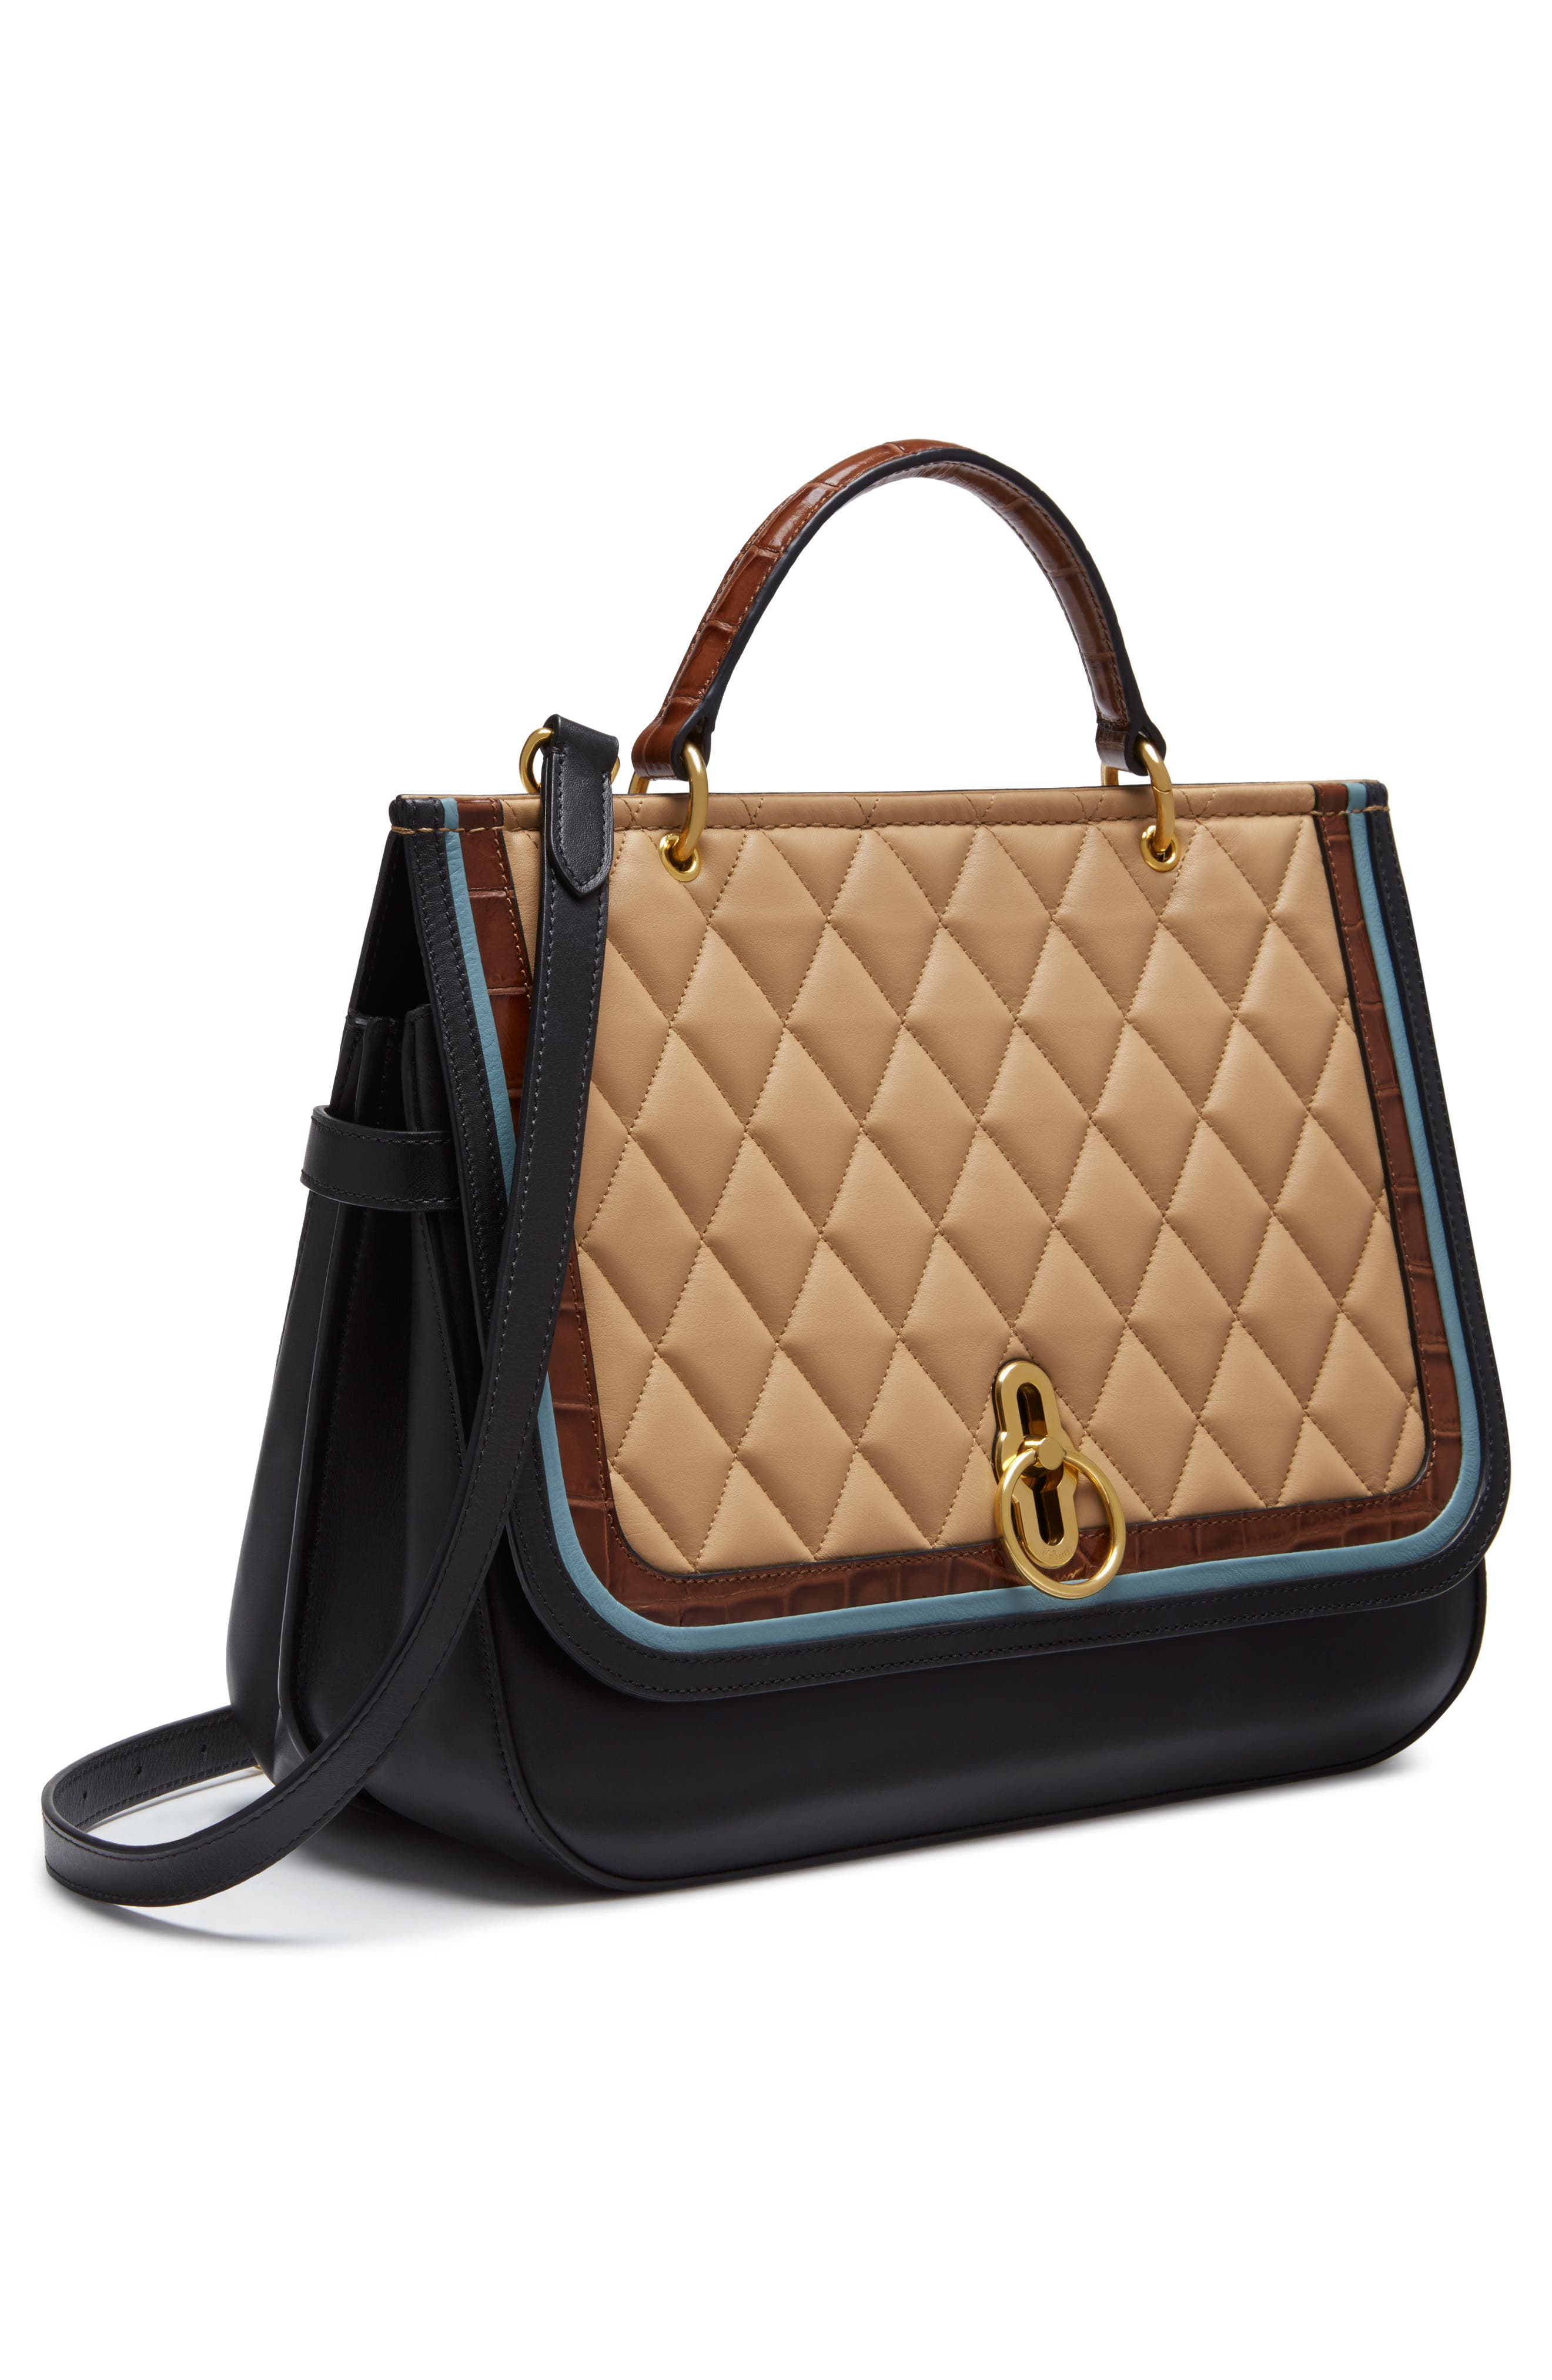 Amberley Quilted Calfskin Leather Satchel,                             Alternate thumbnail 4, color,                             Black/ Tan/ Multi